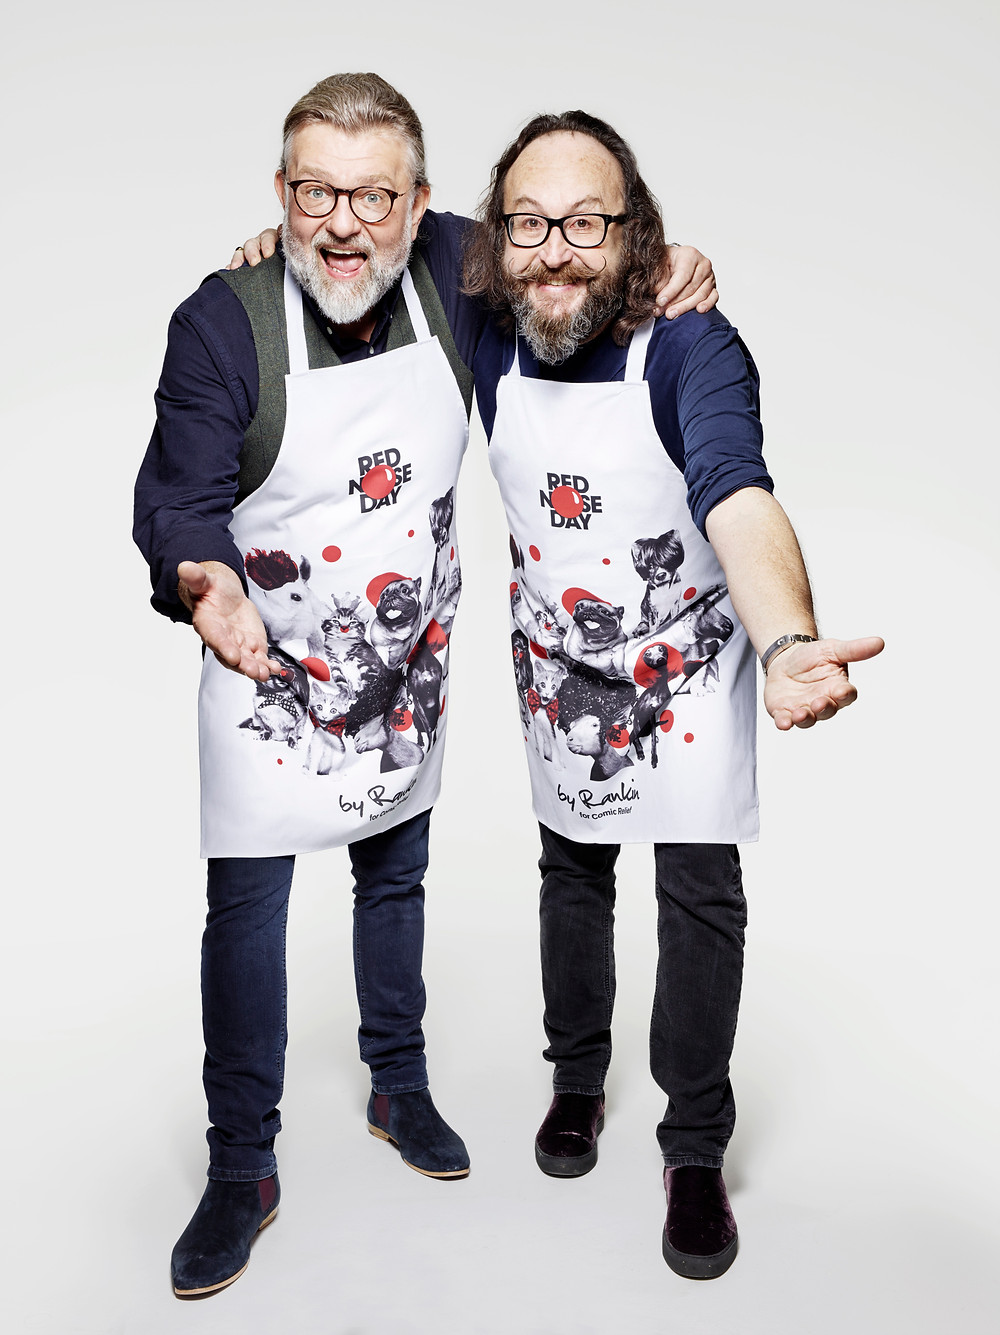 The Hairy Bikers model Limited Edition HomeSense Aprons